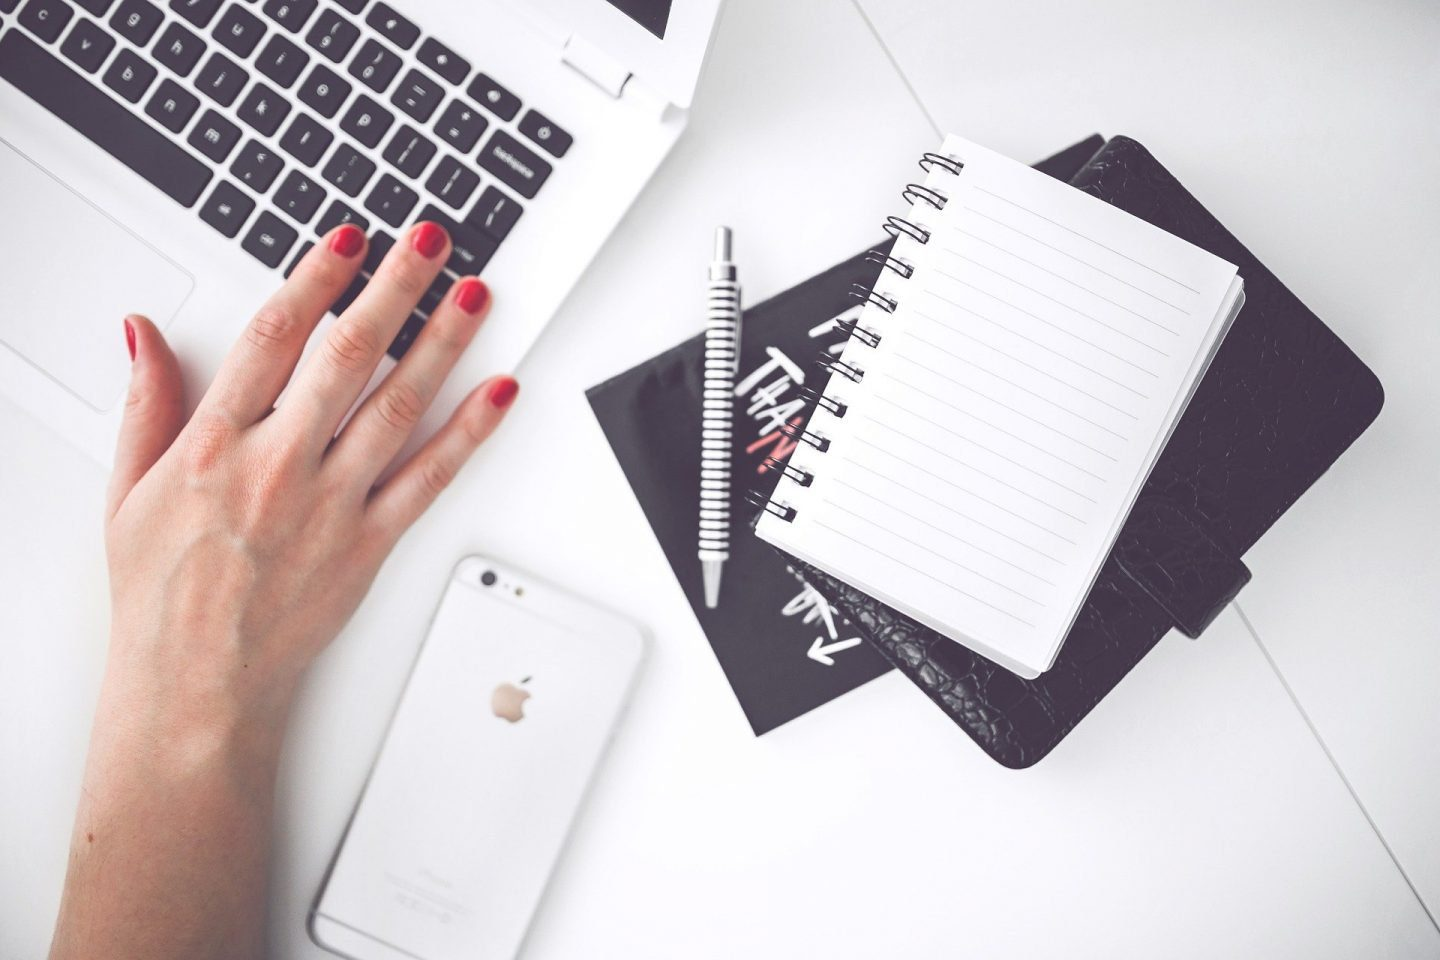 A hand on a laptop keyboard, an iphone and a notebook and pen on the desk next to it